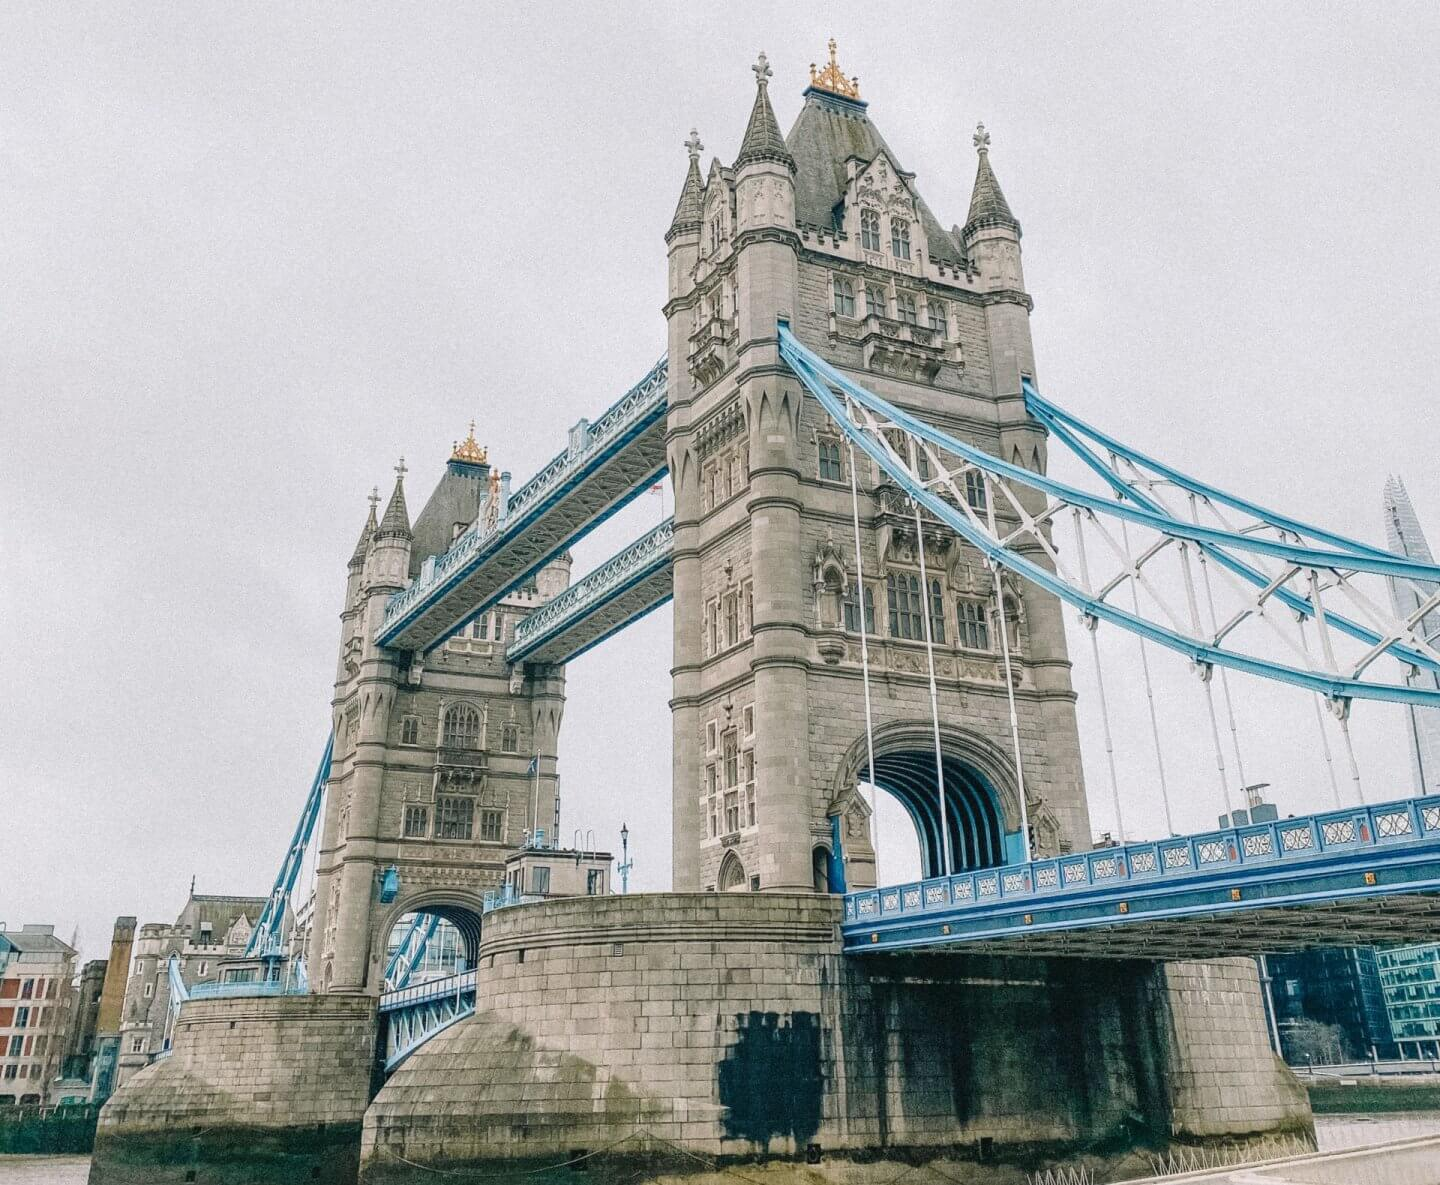 image of tower bridge, London as part of the 2020 roundup.